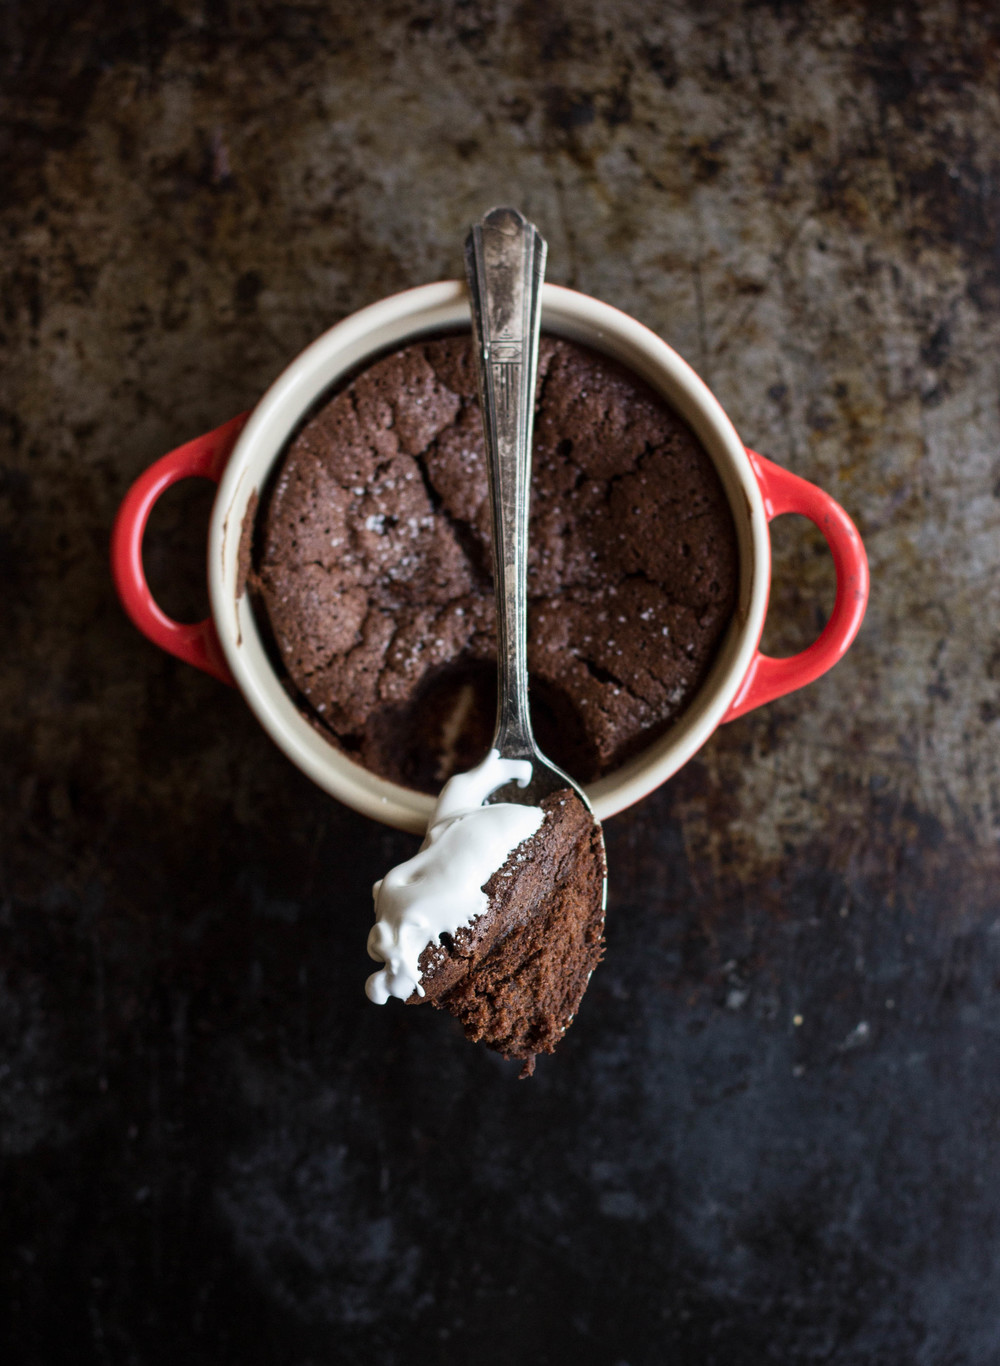 Fallen Chocolate Cake with Marshmallow Cream Sauce / February 13, 2015 ...